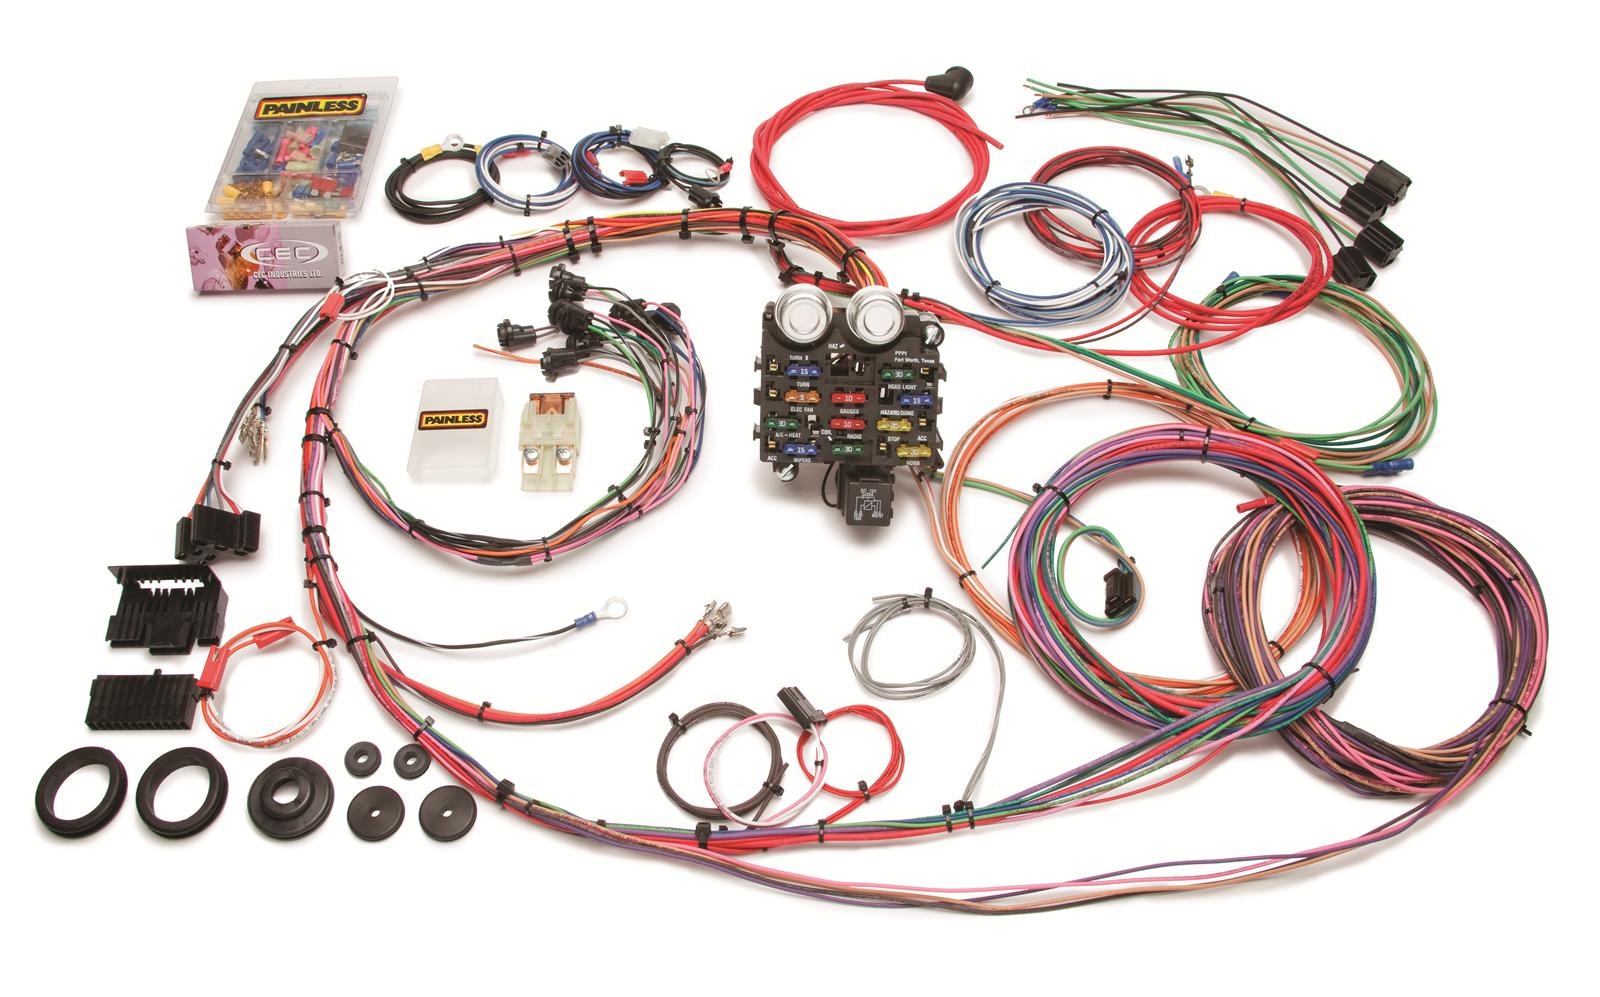 Painless Performance 19 Circuit GMC Chevy Truck Harnesses 10112